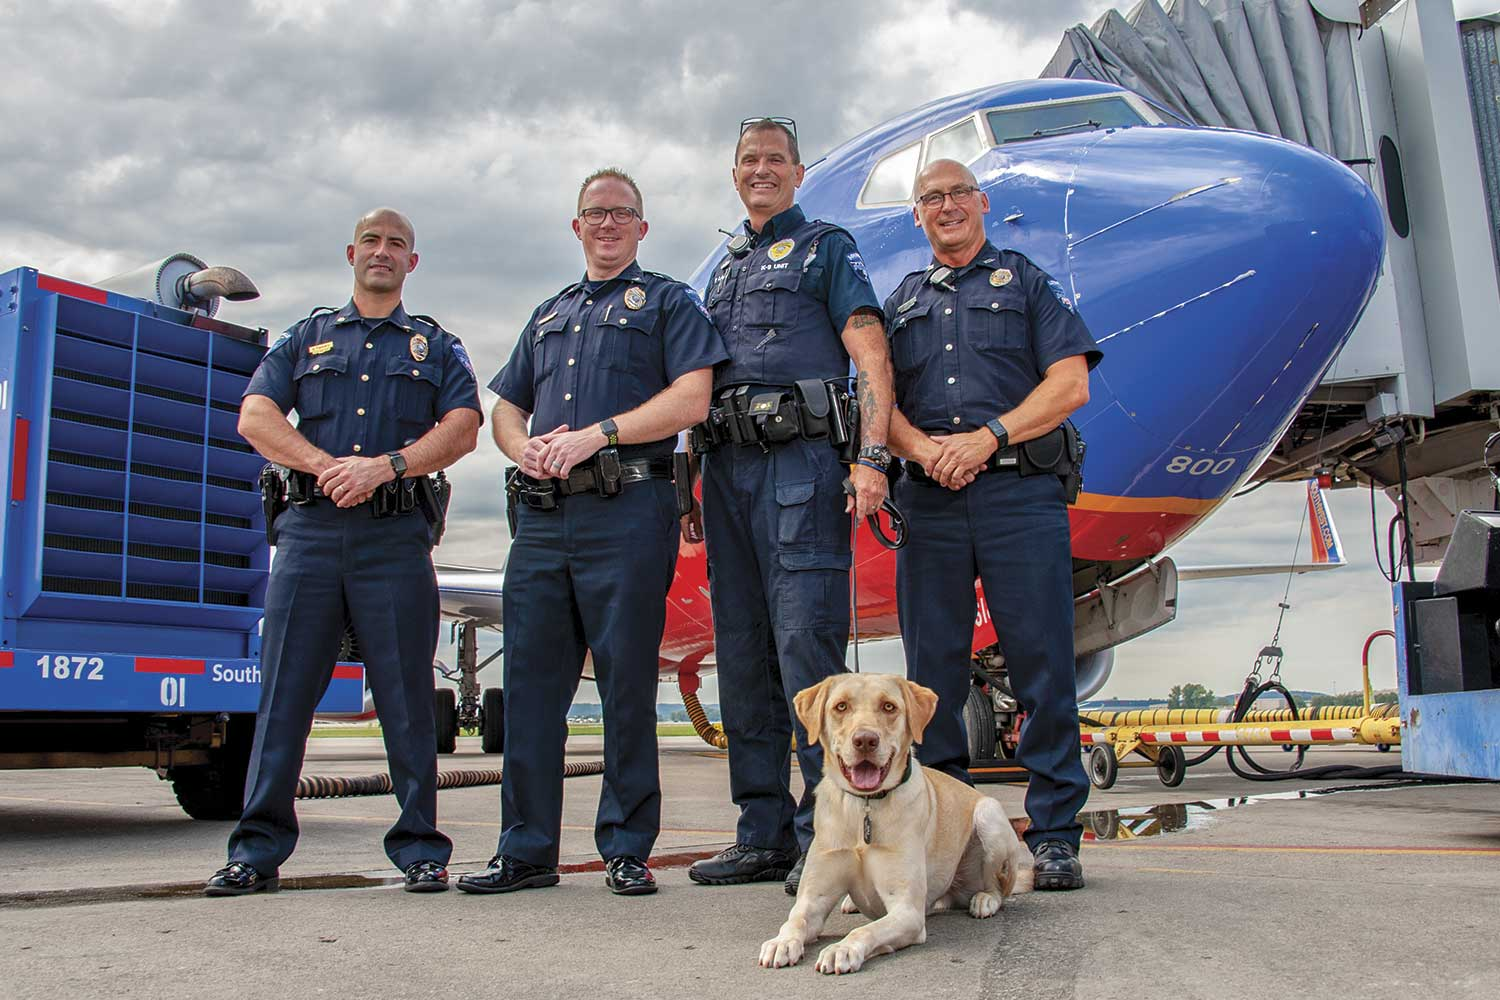 From left-to-right, Maj. Dustin Flannery, Chief Josh Ball, Officer Peter Lamb, K9 Raj and Officer Jeff Rogers pose in front of a Southwest Airlines plane on the tarmac at the Louisville International Airport. (Photo by Jim Robertson)